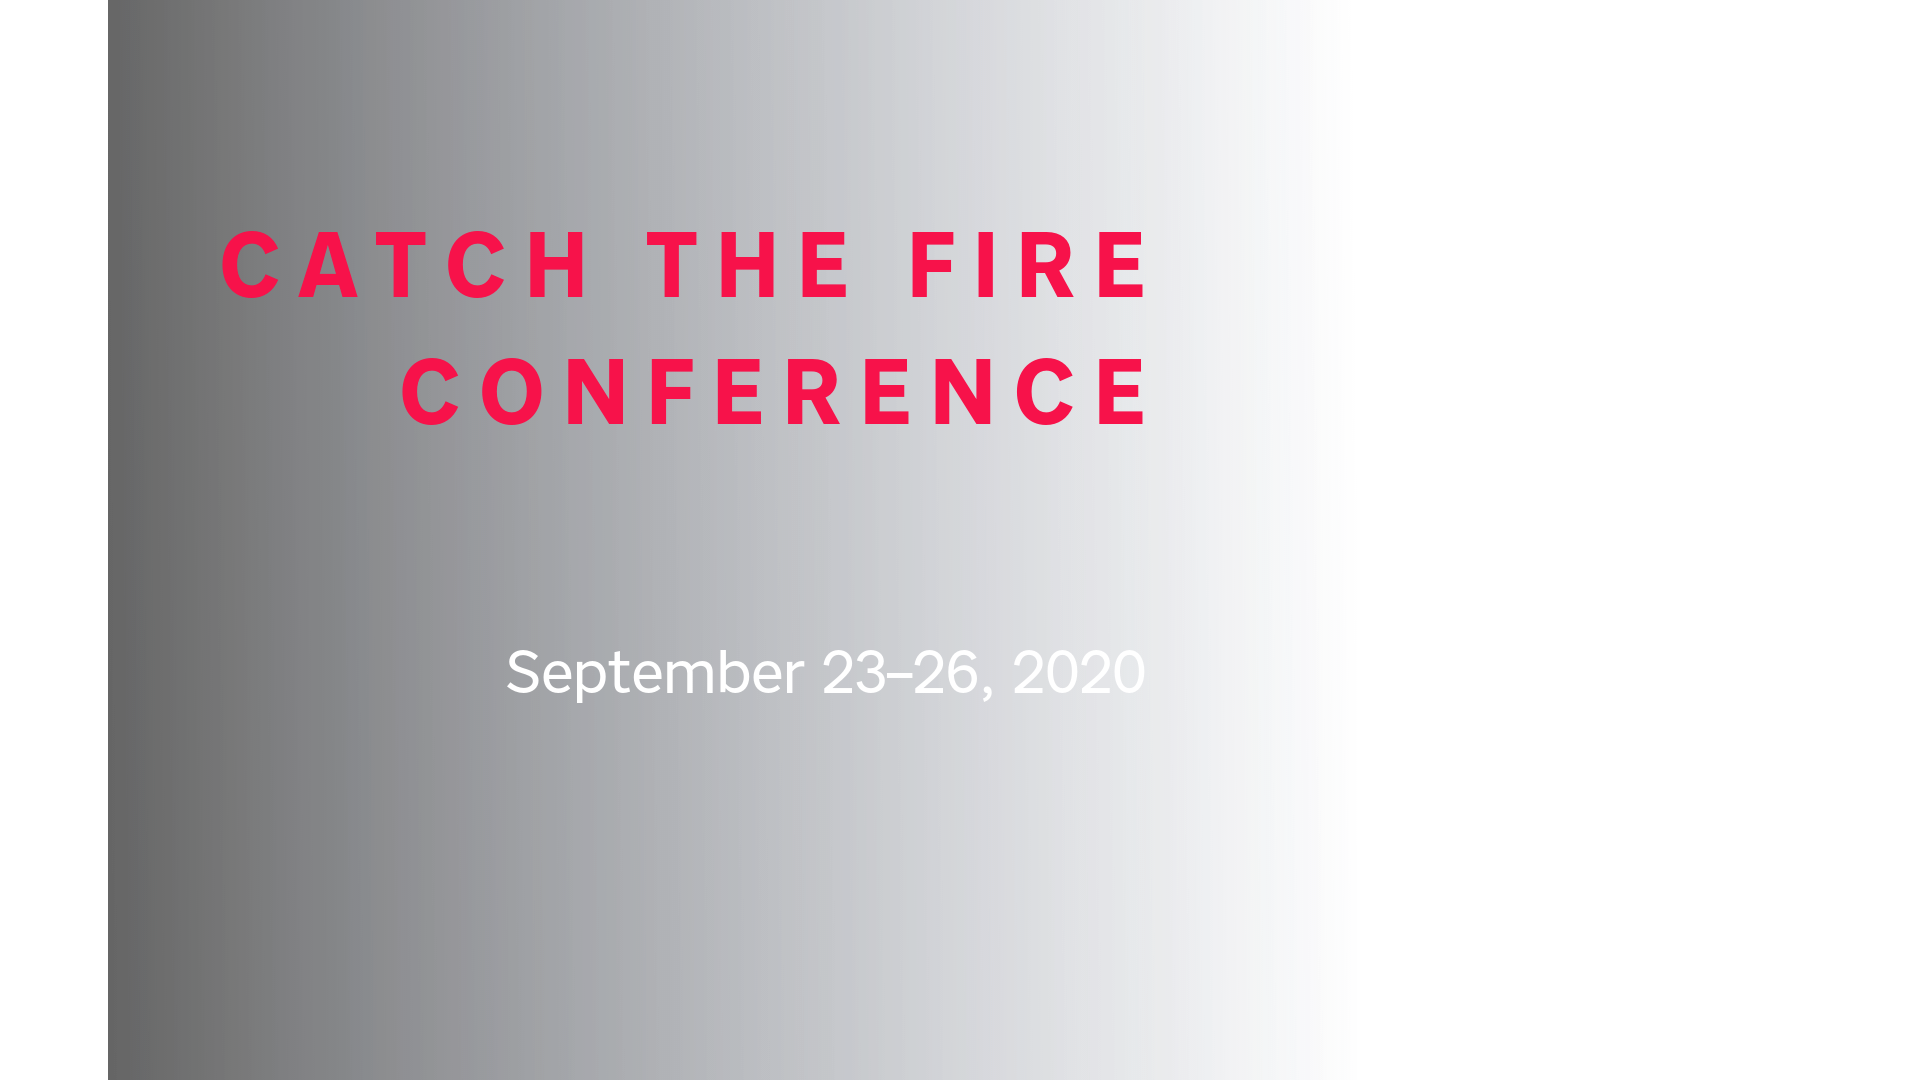 ctfconference 2020 (1).png